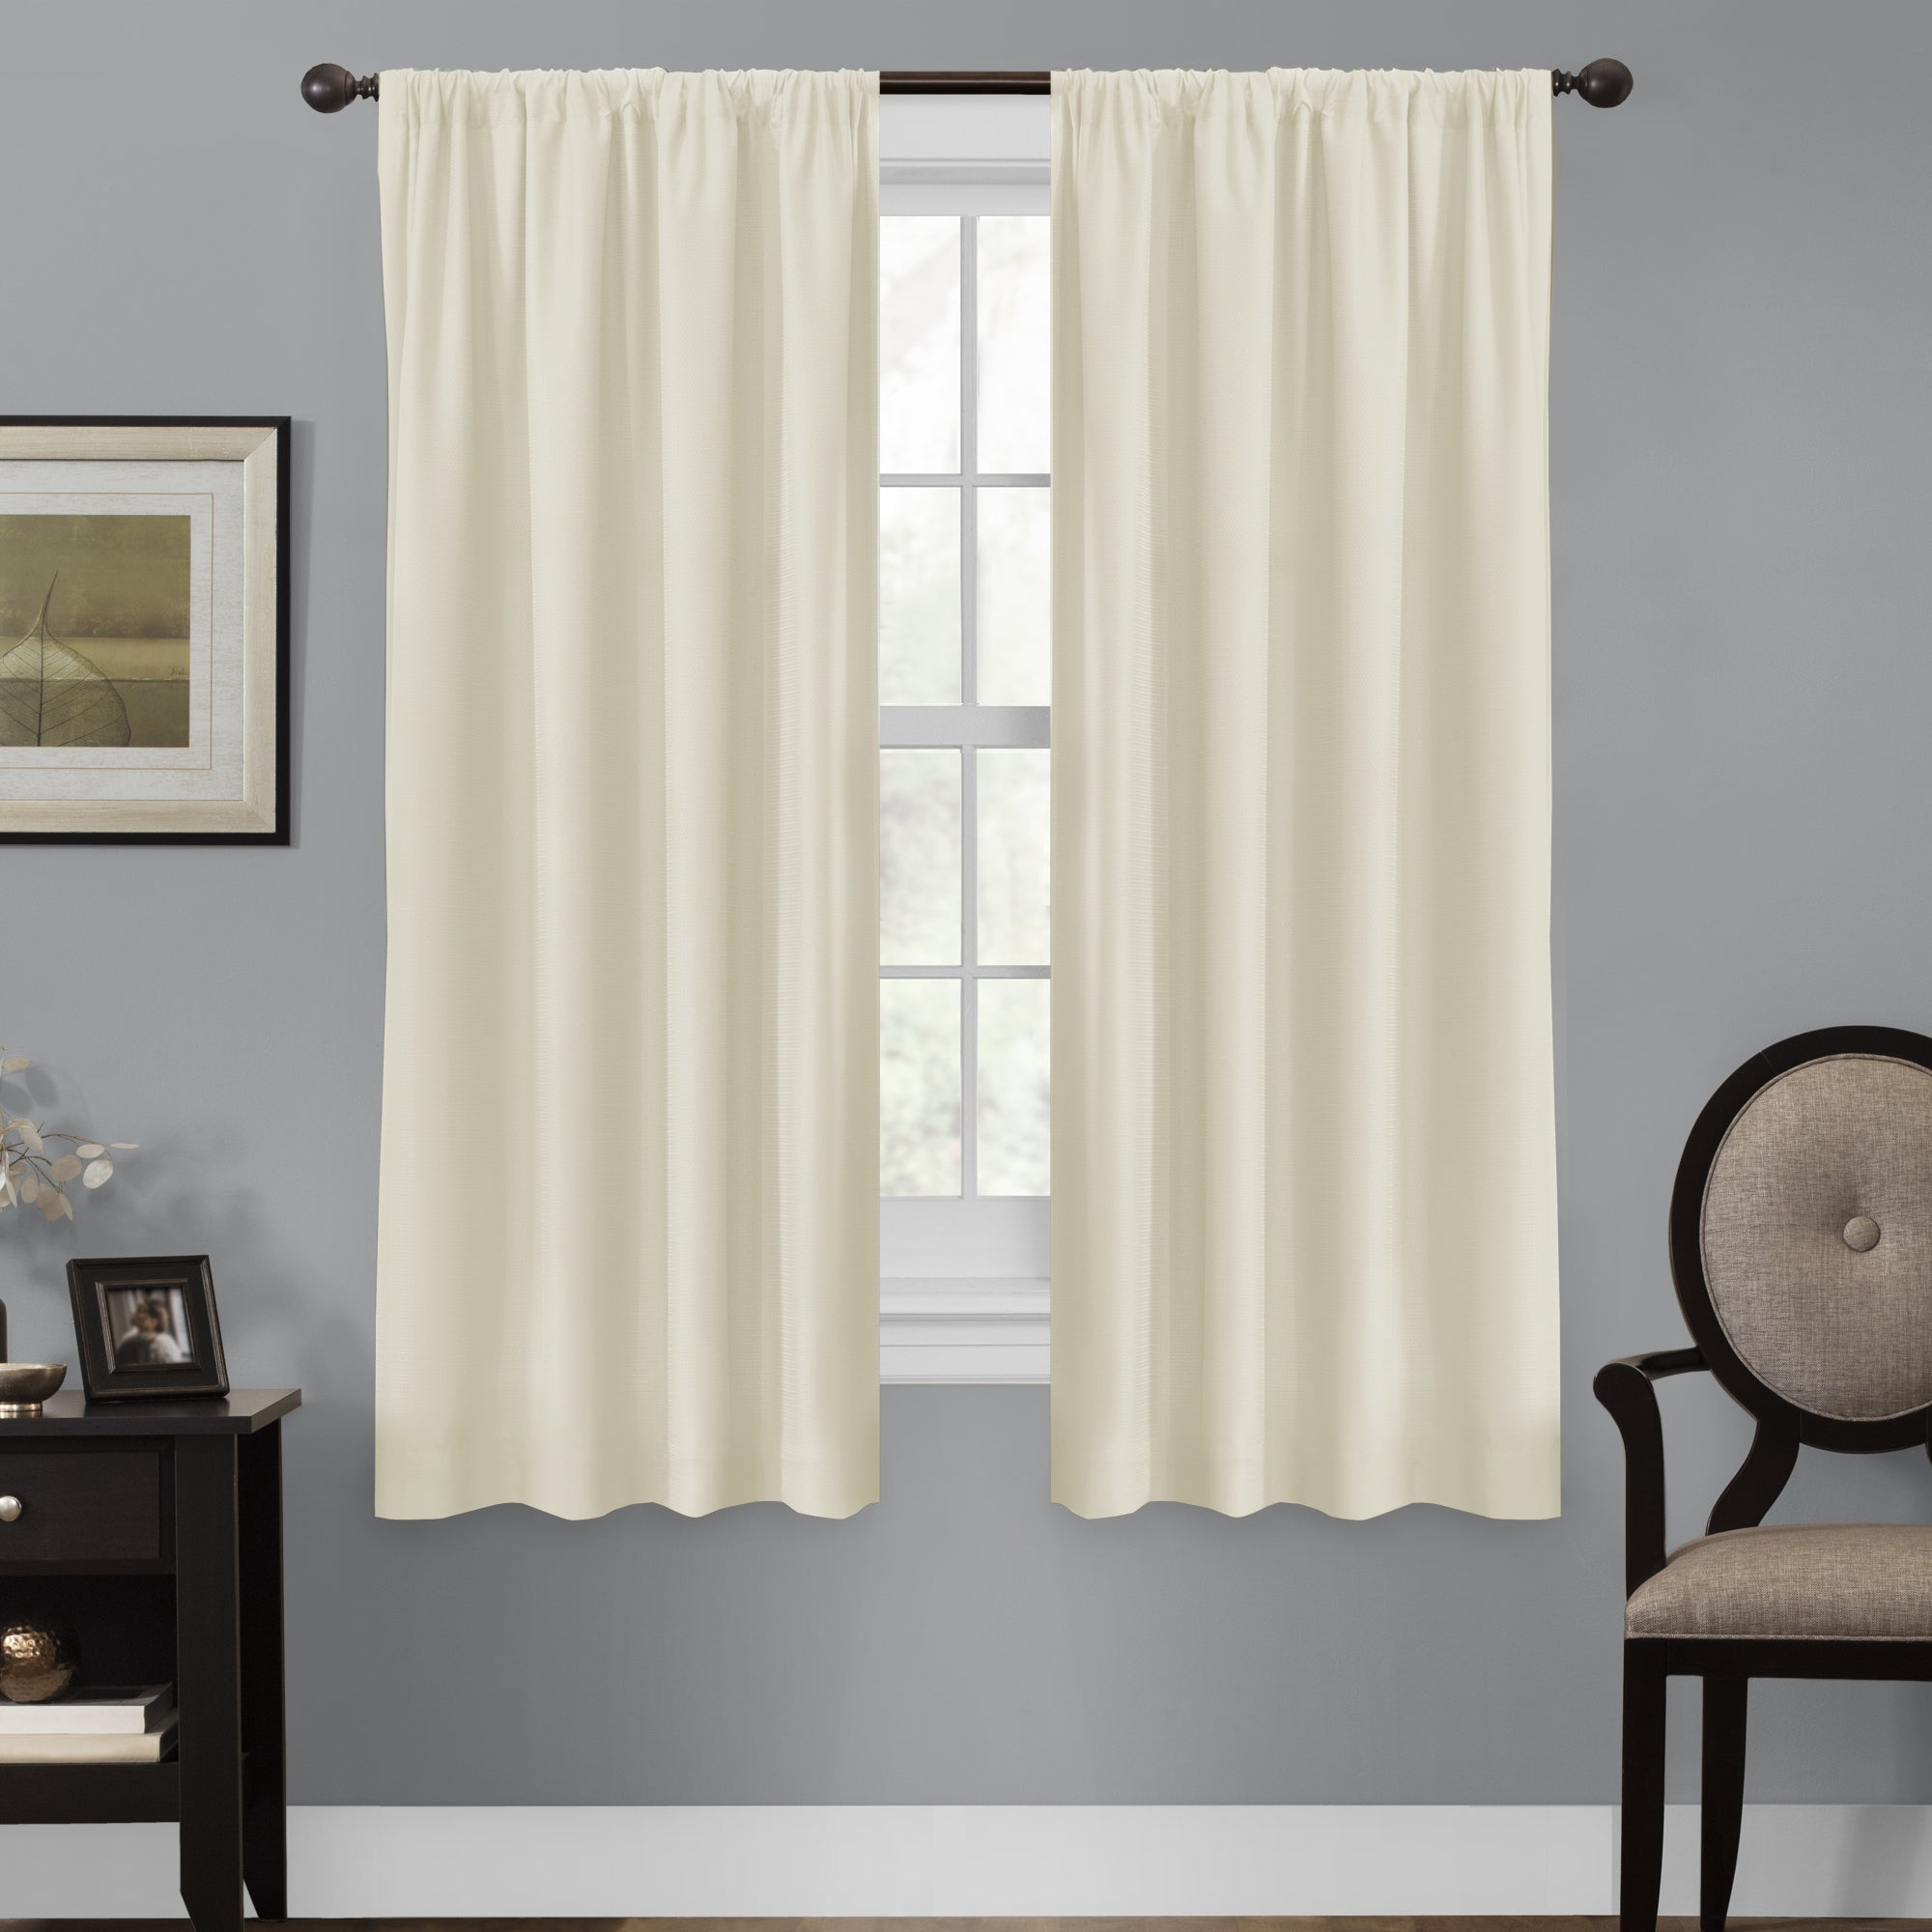 do panels tab curtains gold colored and of xxx amber solid drapes rugs category curtain bella concealed set market top inch world